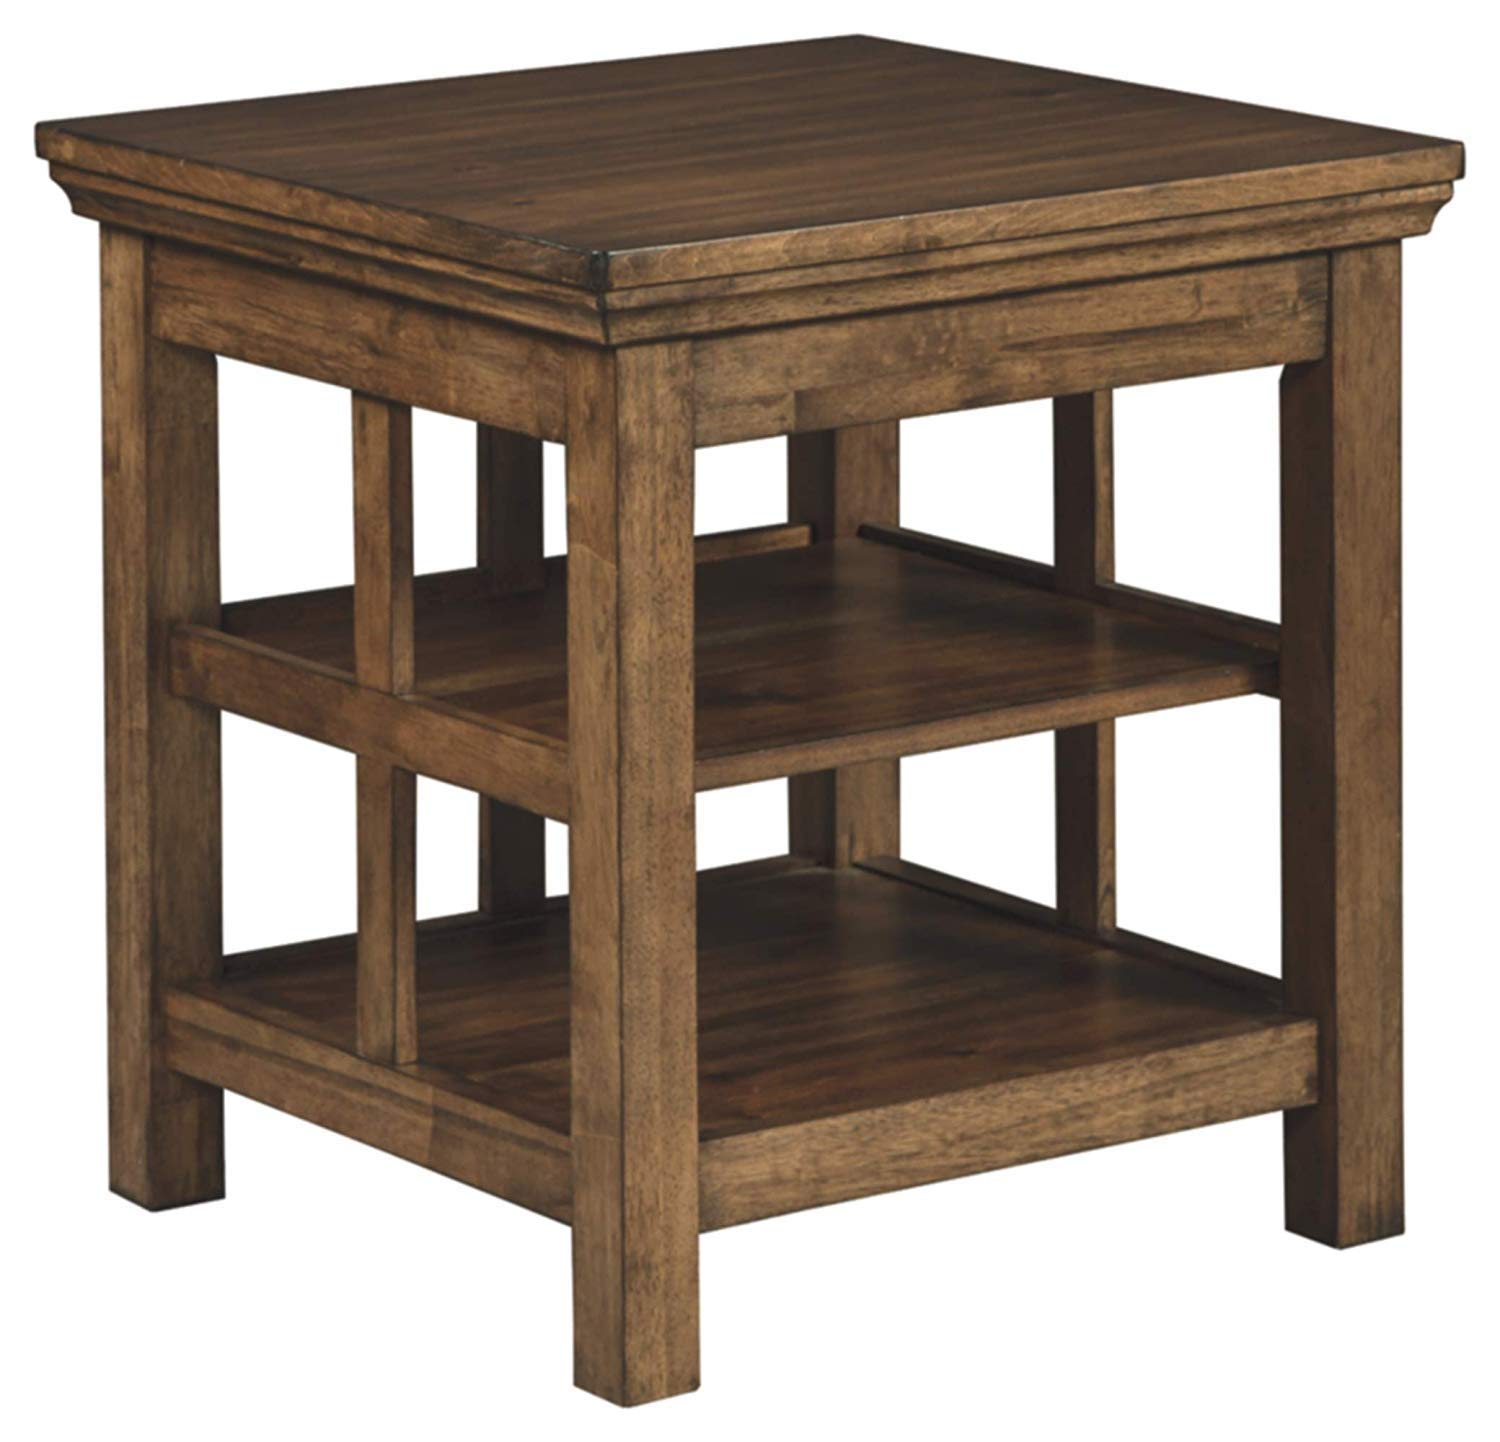 signature design ashley flynnter end table medium brown kitchen dining furniture murphy coffee set piece modern miami off distressed paint effects wood ethan allen fabrics